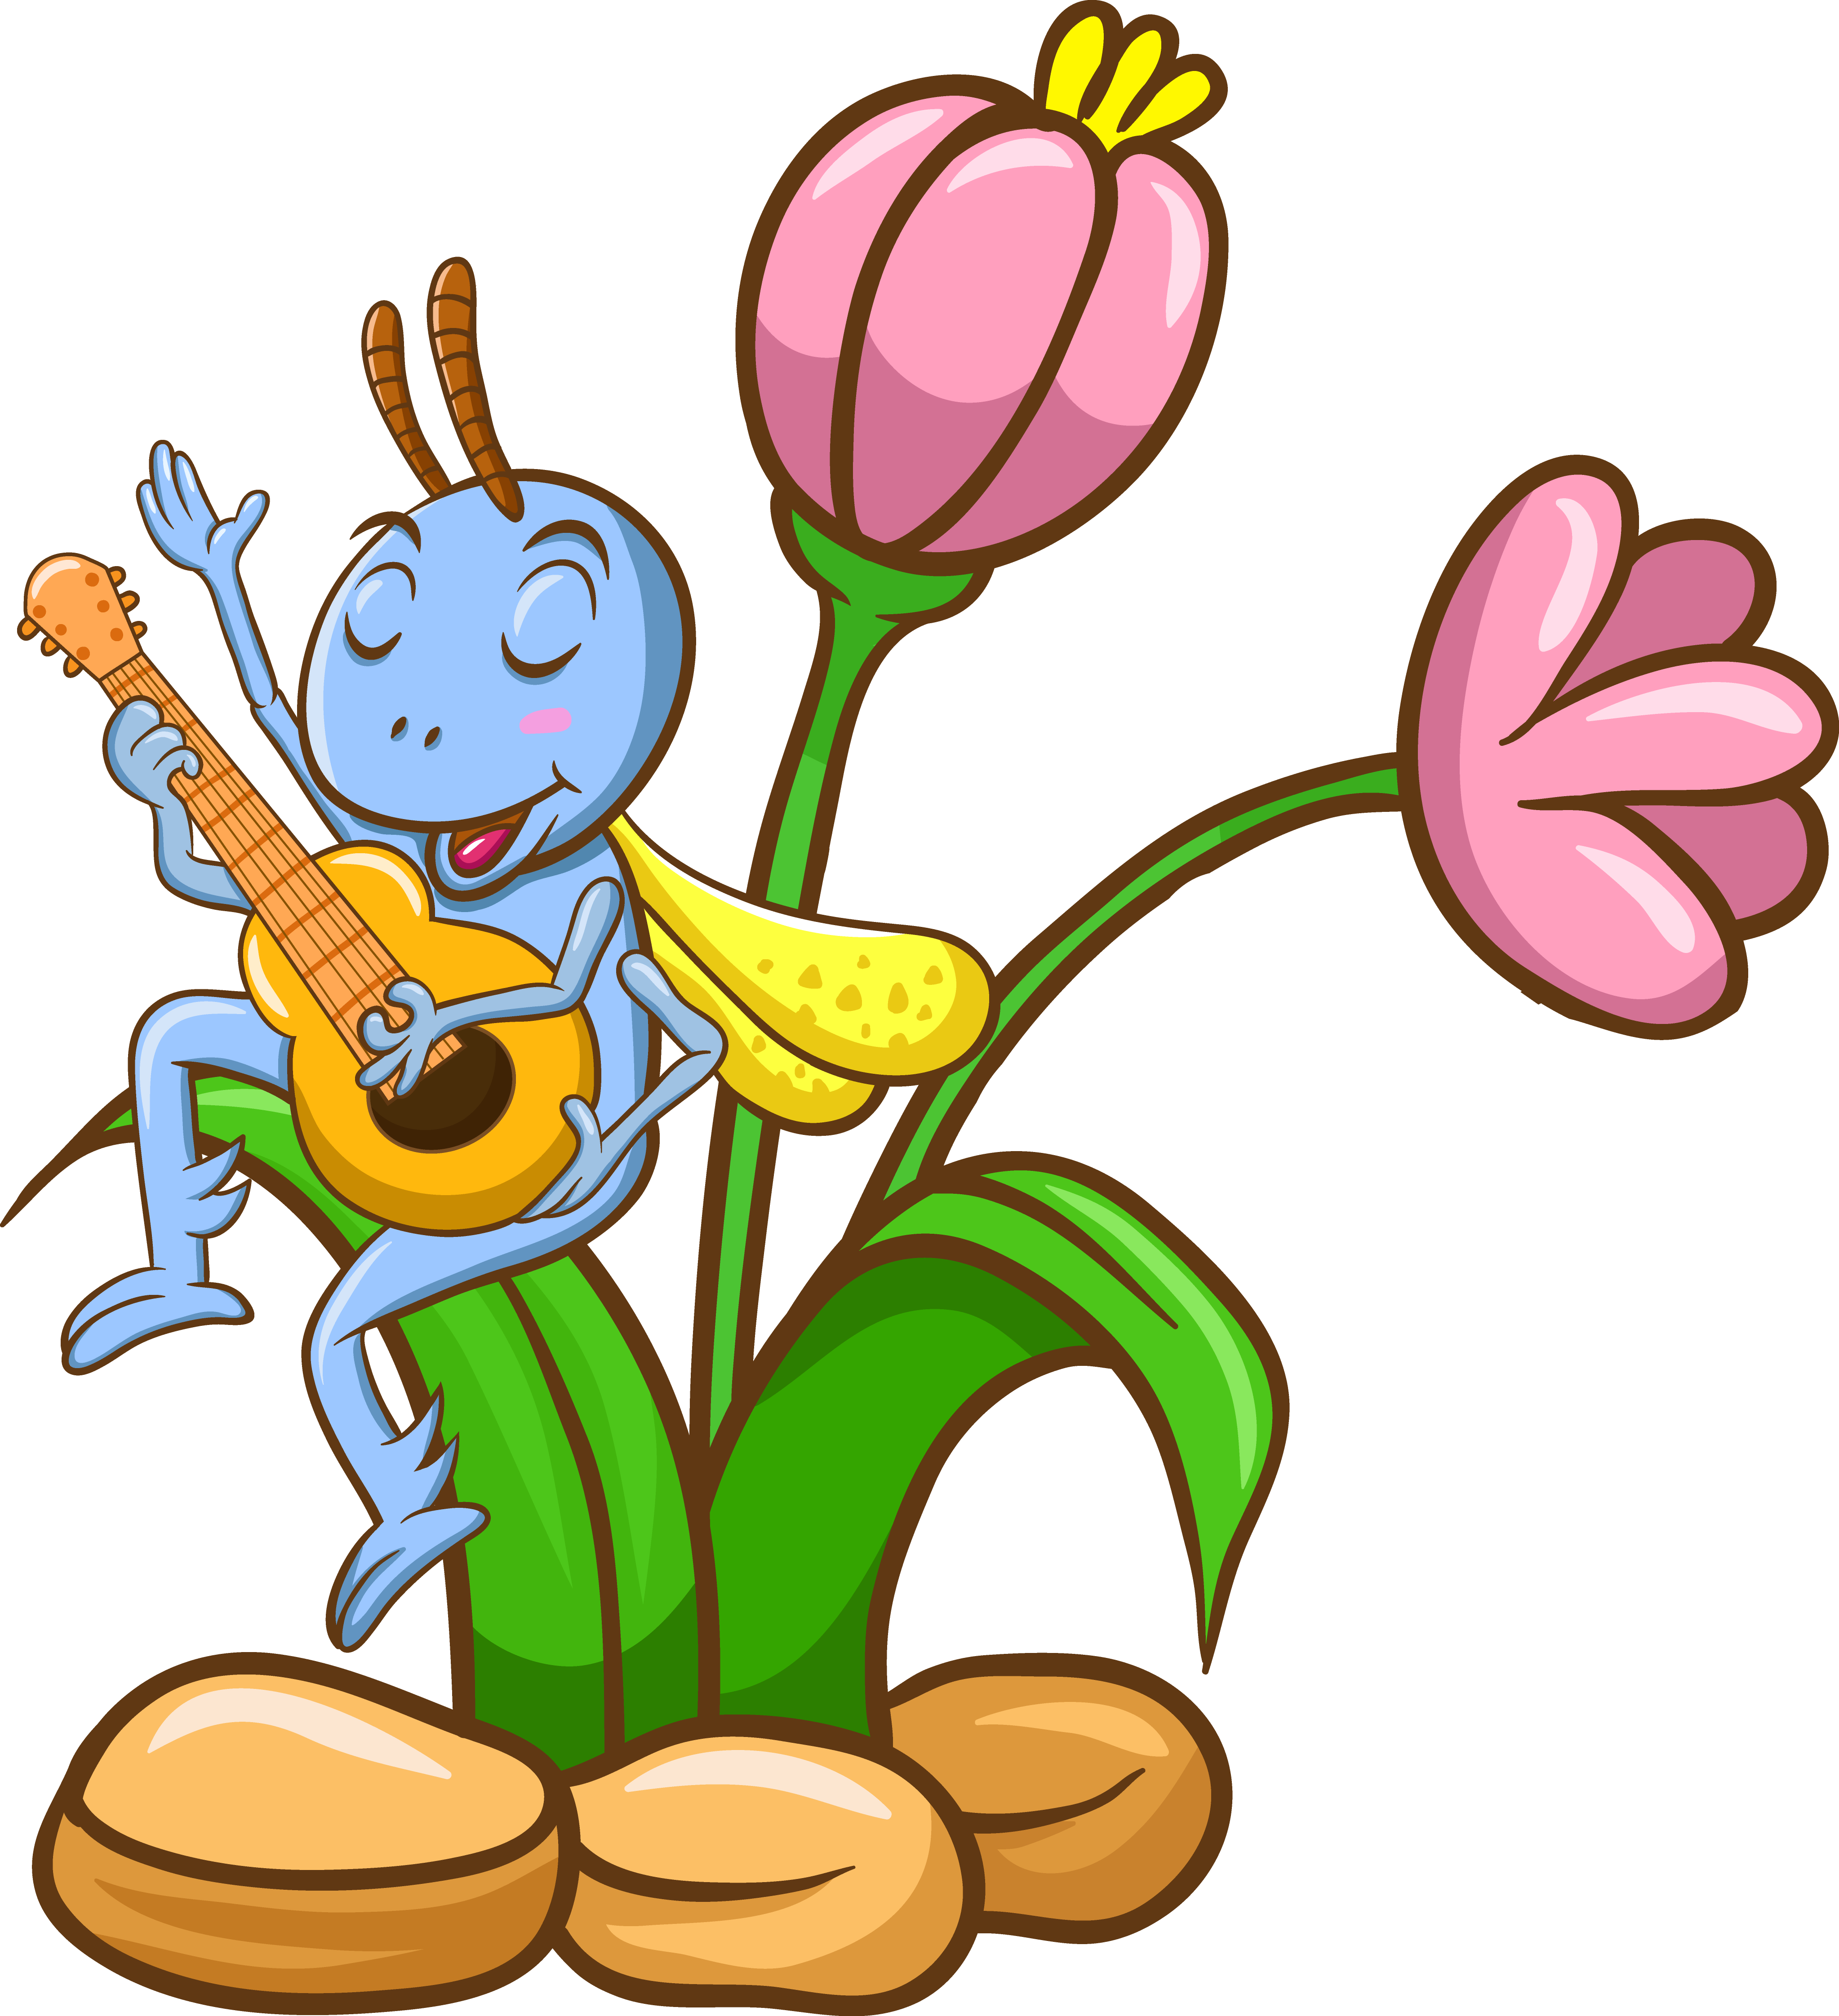 Short clipart insect. The ant and grasshopper